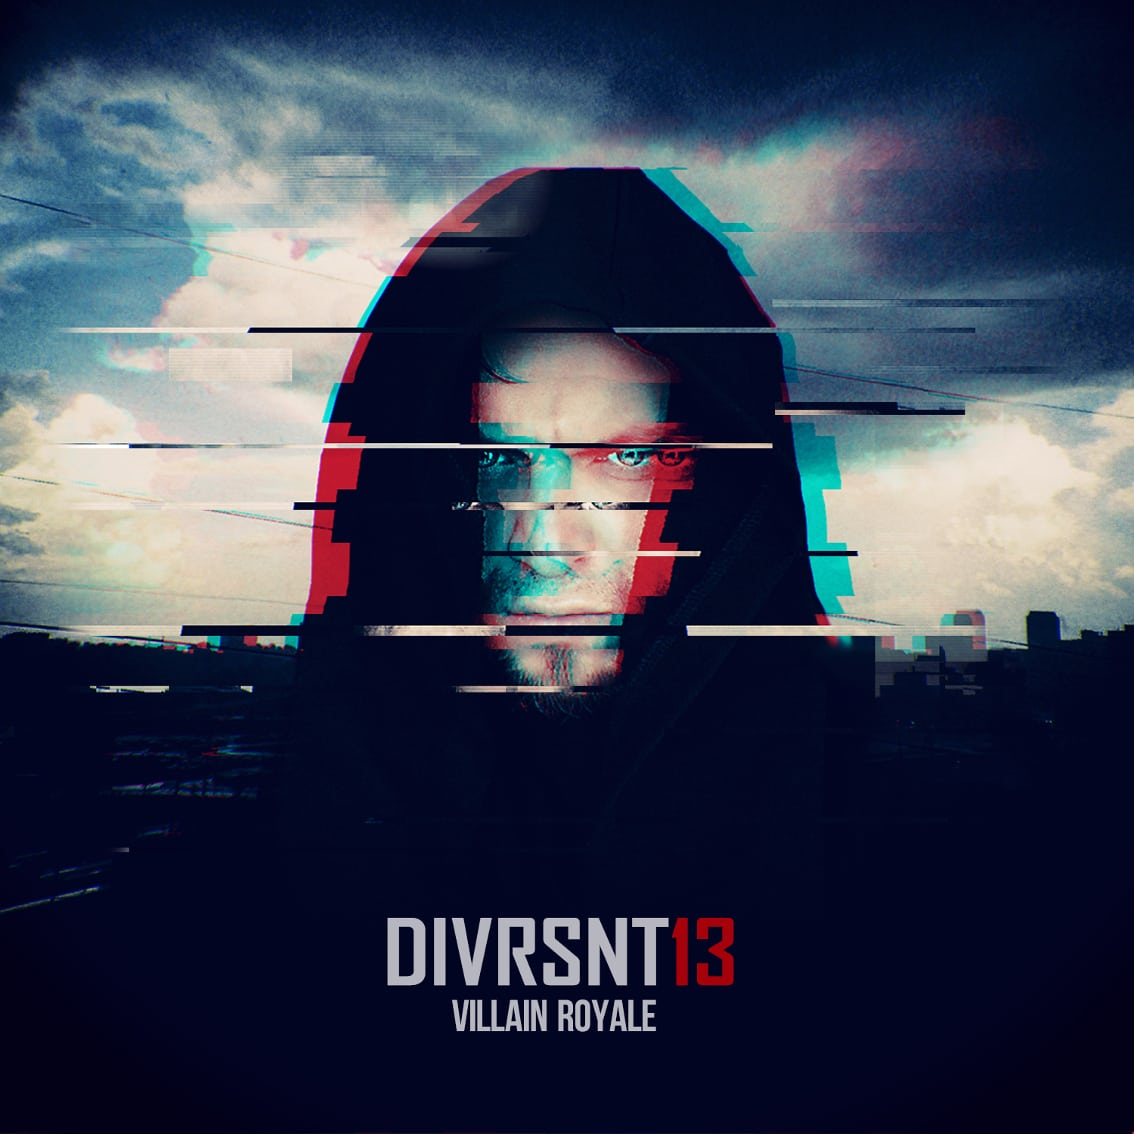 Diversant:13 (aka Divrsnt13) hits back with brand new EP:'Villain Royale'